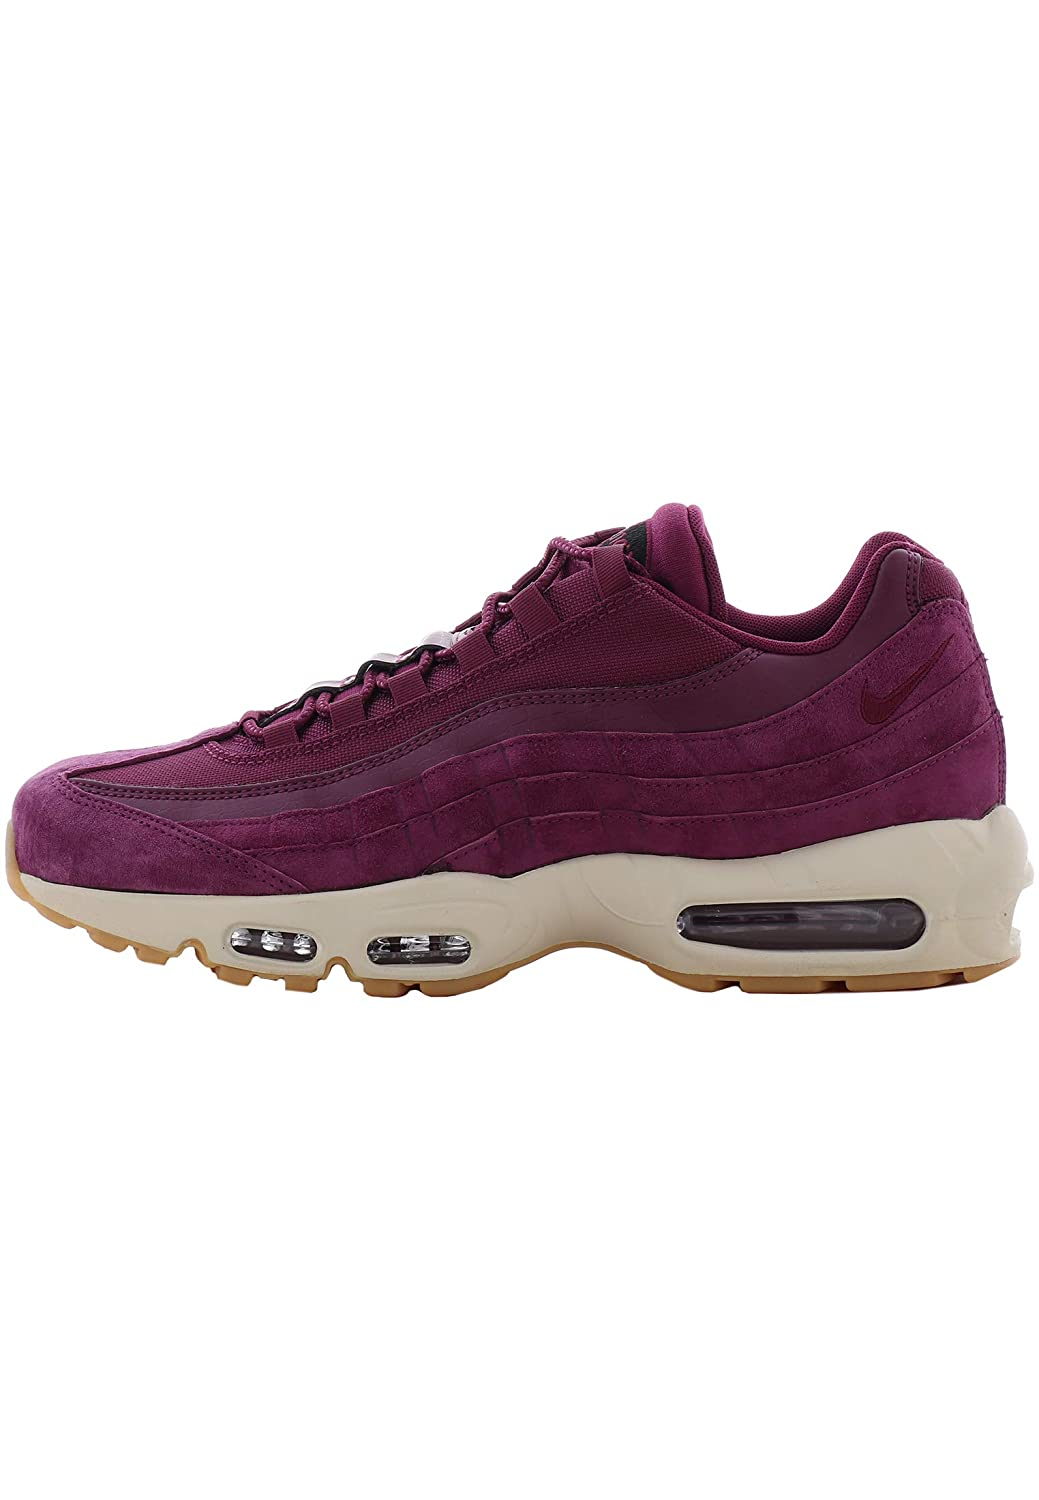 new styles aaea0 38b5b Amazon.com  Nike Air Max 95 Se Mens Aj2018-600  Road Running